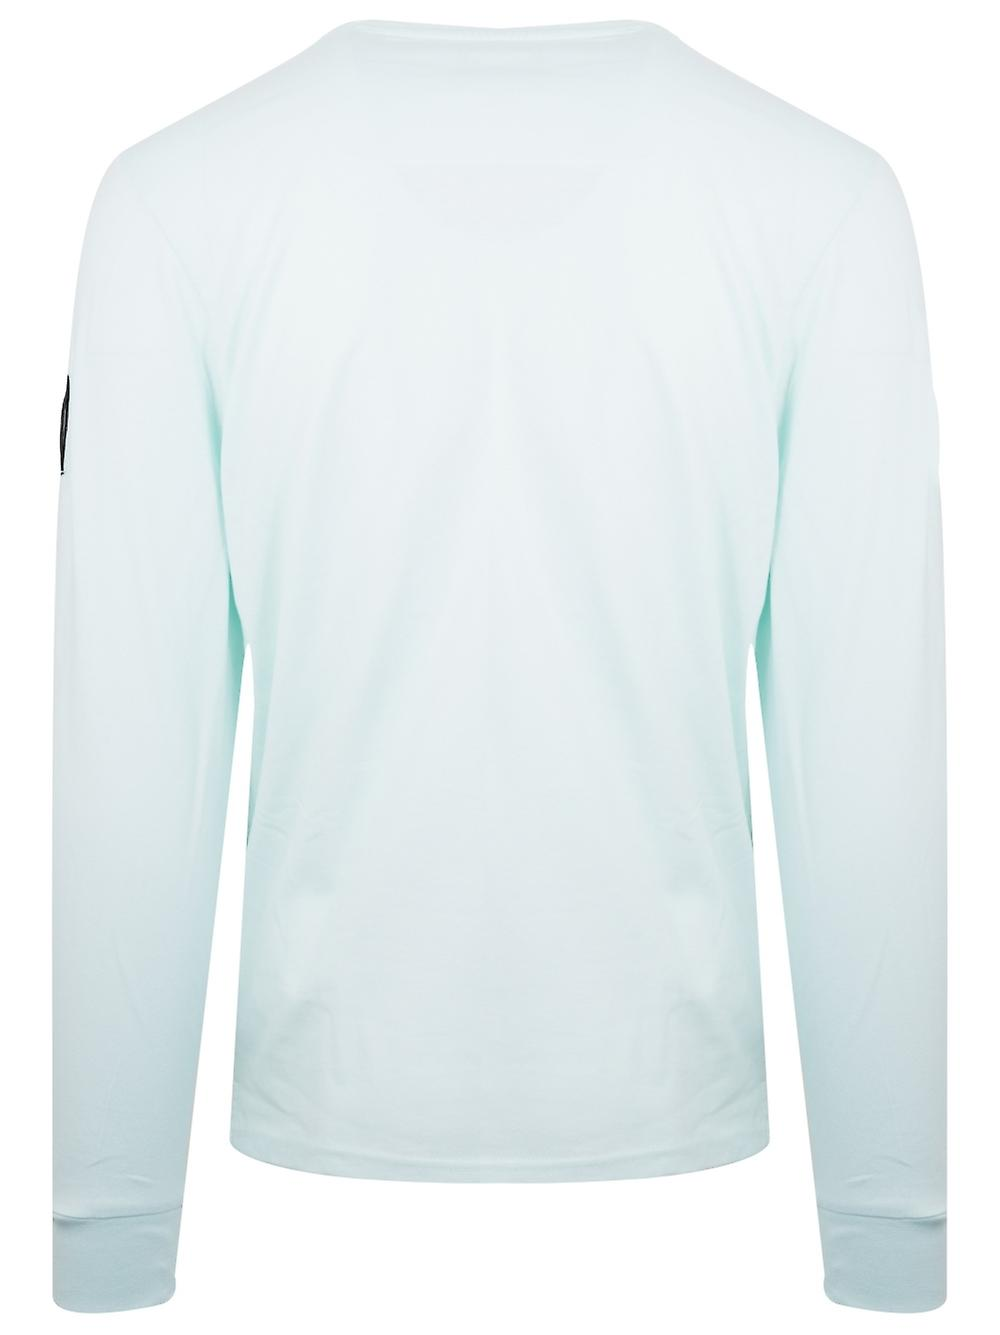 Marshall Artist Light Aqua Long Sleeve Siren T-Shirt